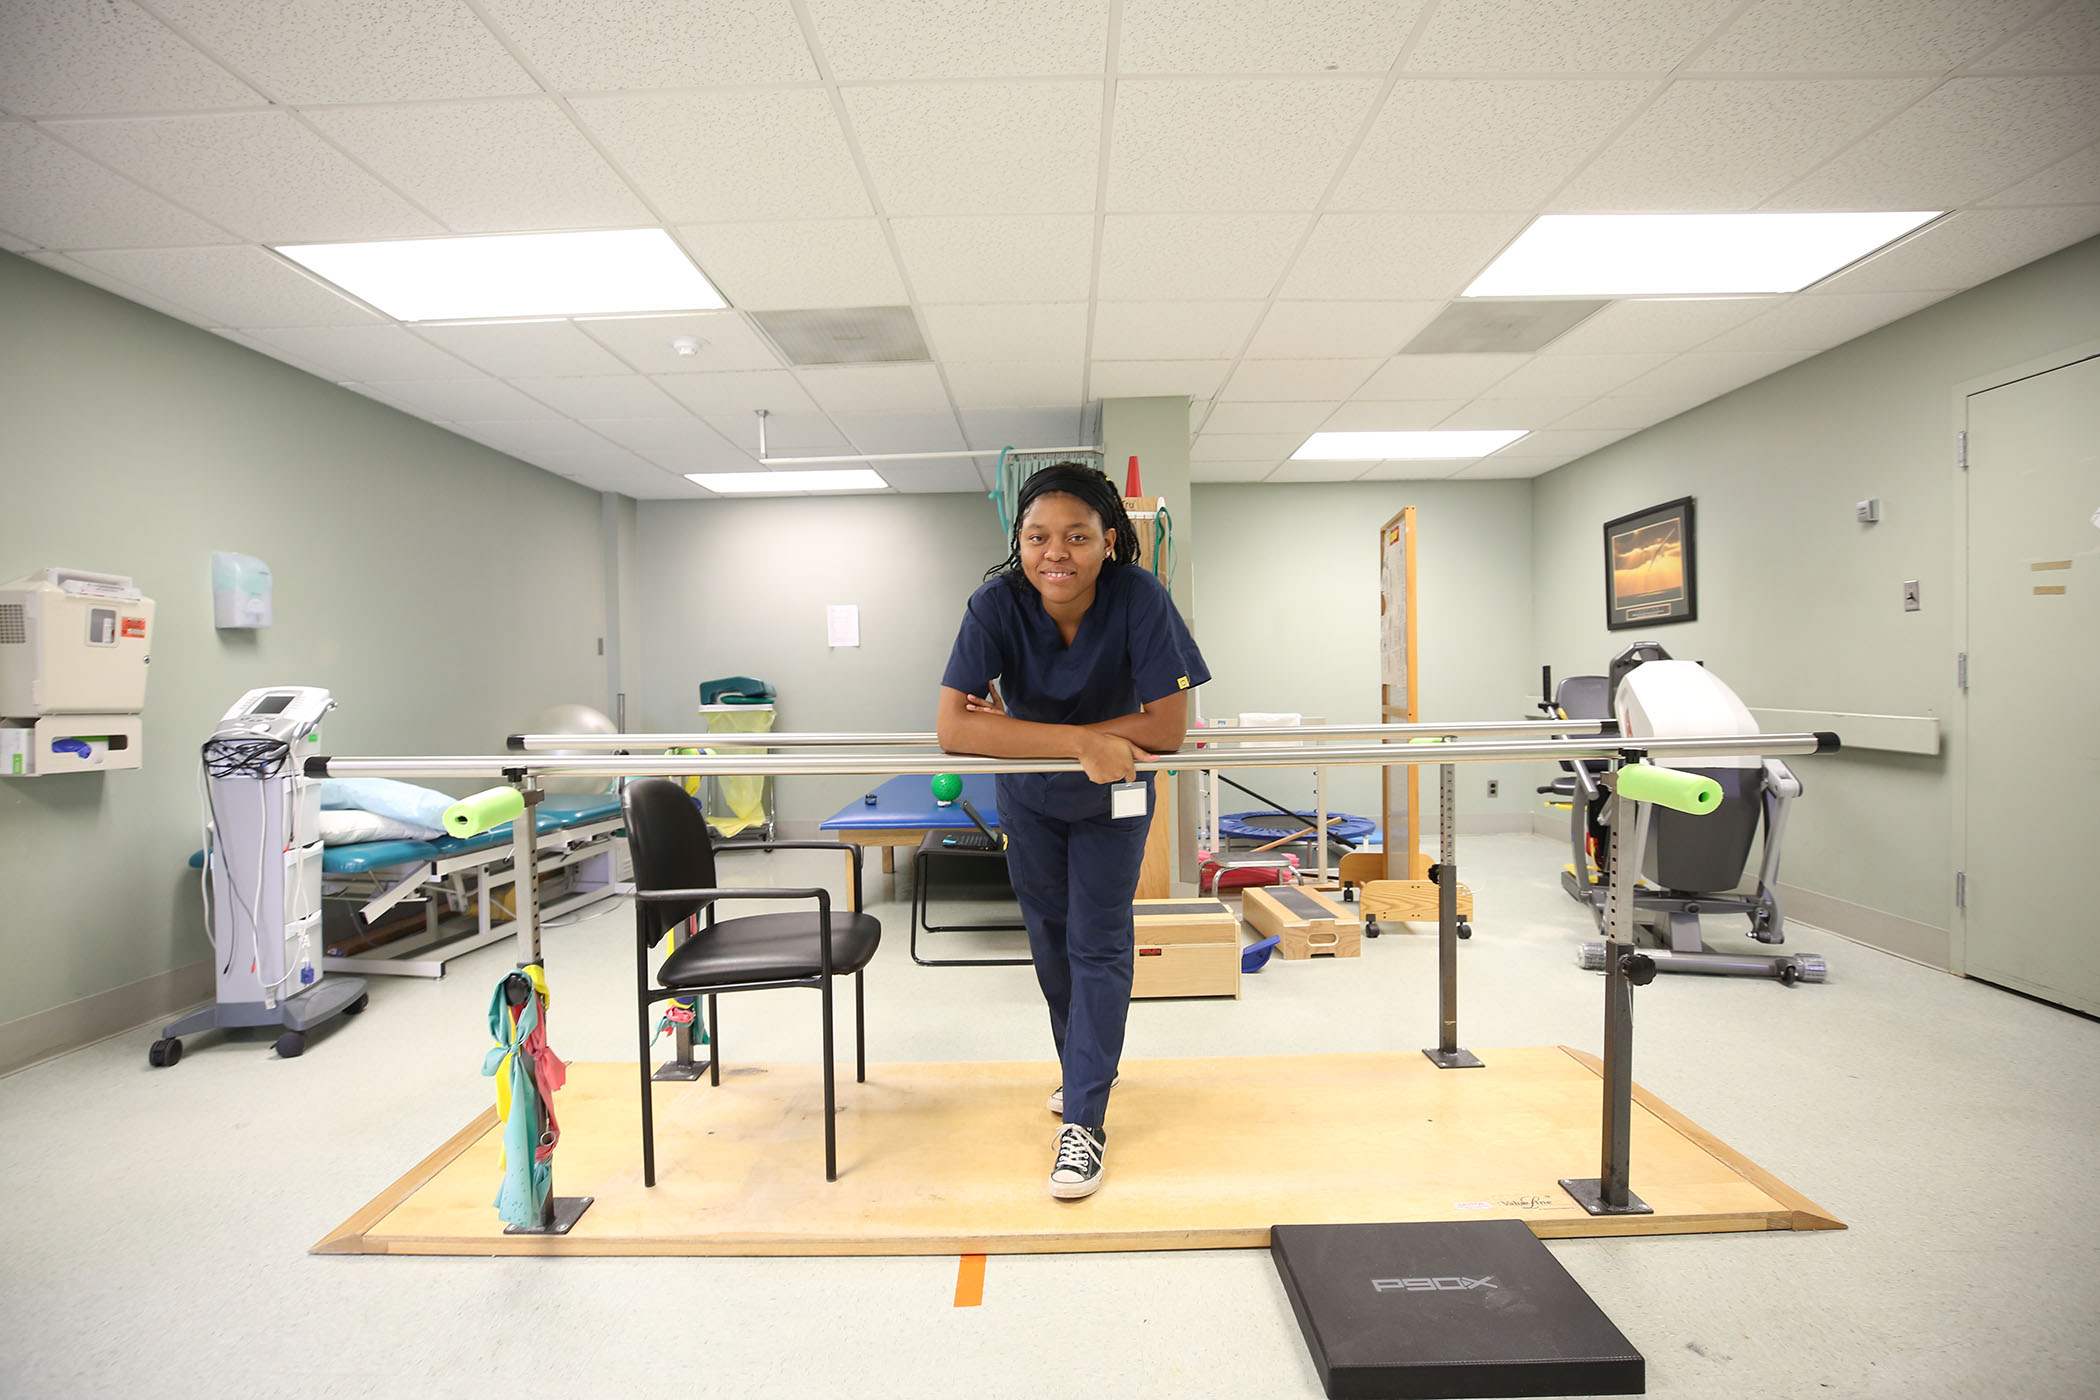 Jaureka performs her clinicals at a local hospital.